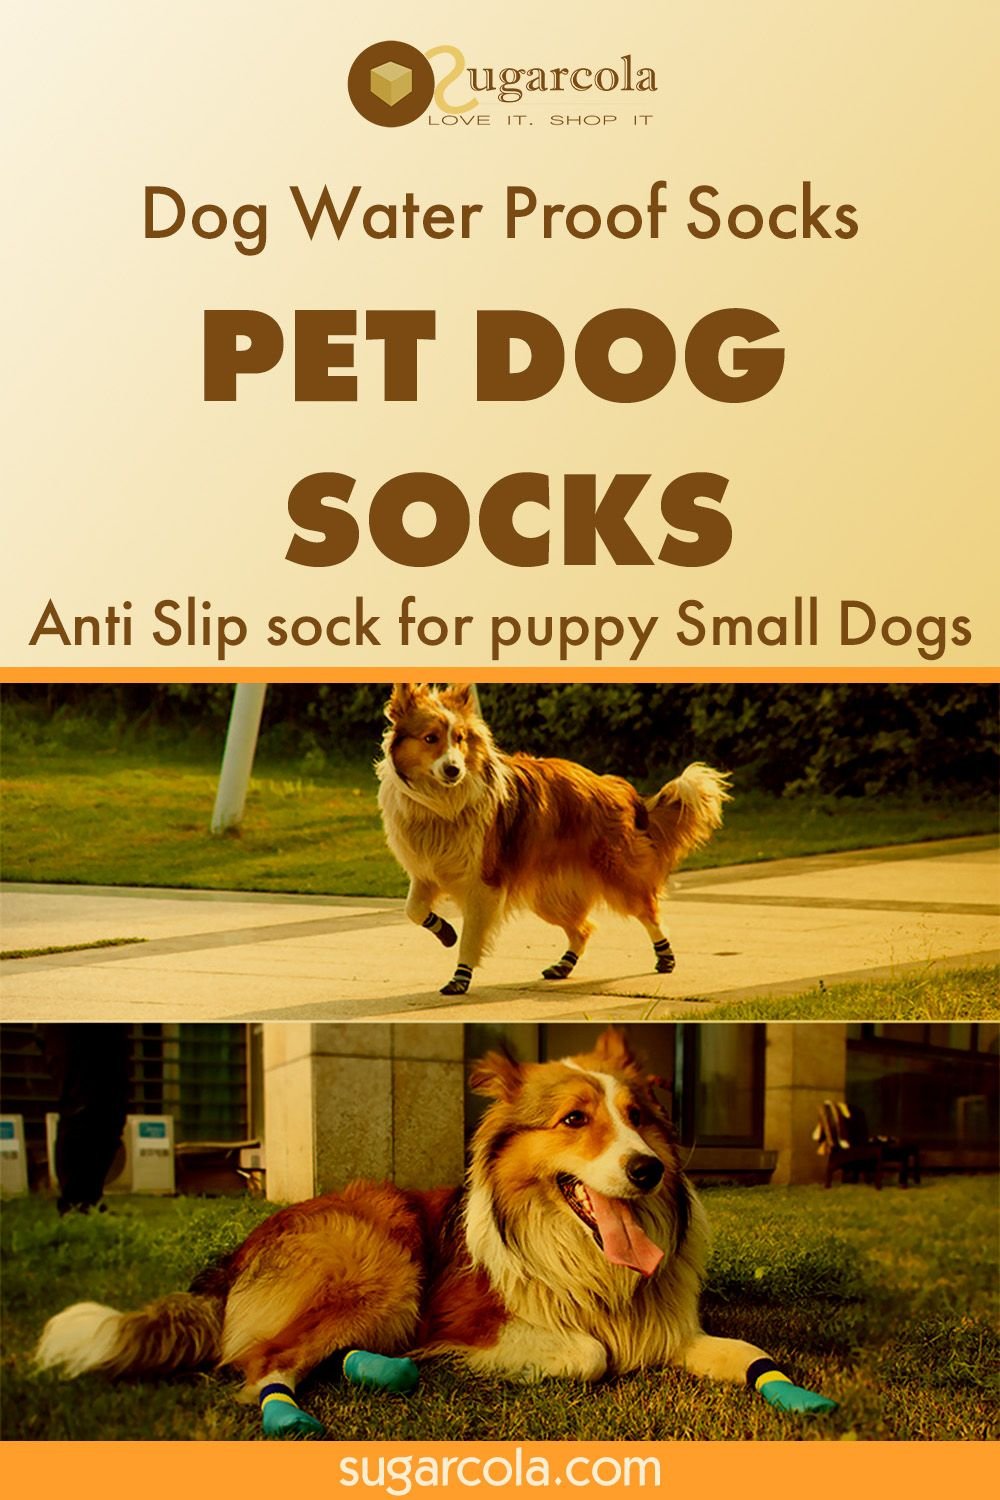 Dog Water Proof Socks Dogs Pet Dogs Small Puppies